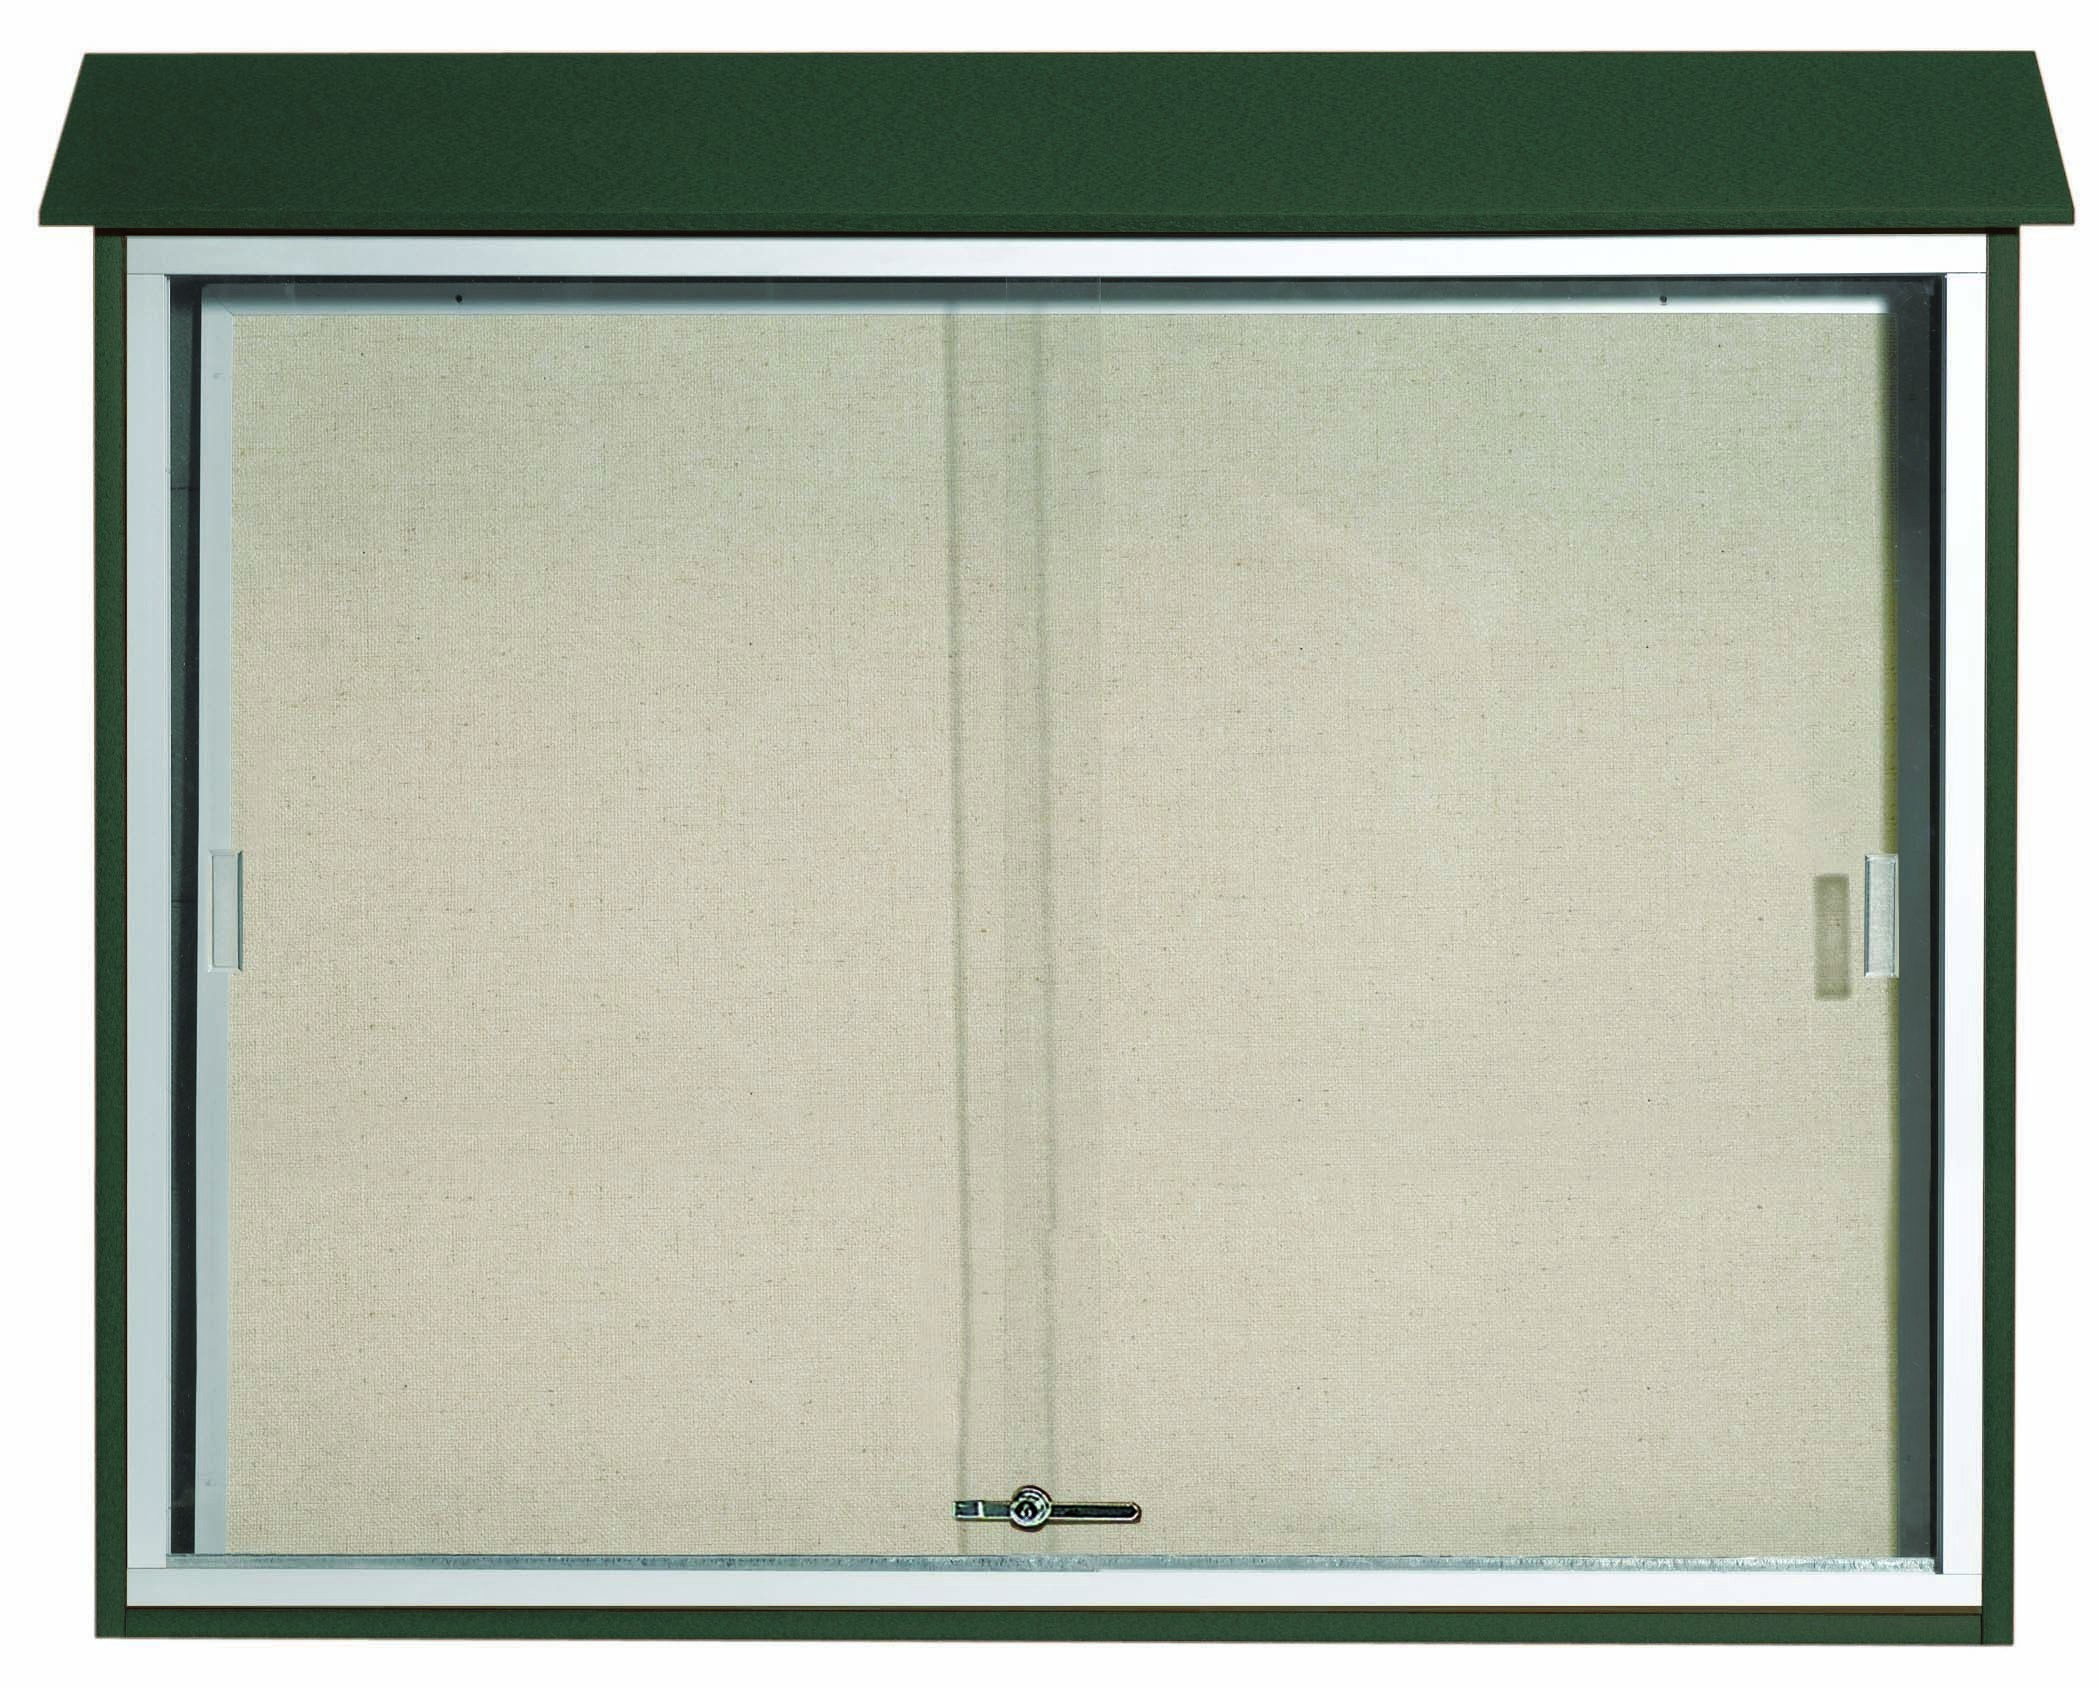 Green Sliding Door Plastic Lumber Message Center with Vinyl Posting Surface- 36